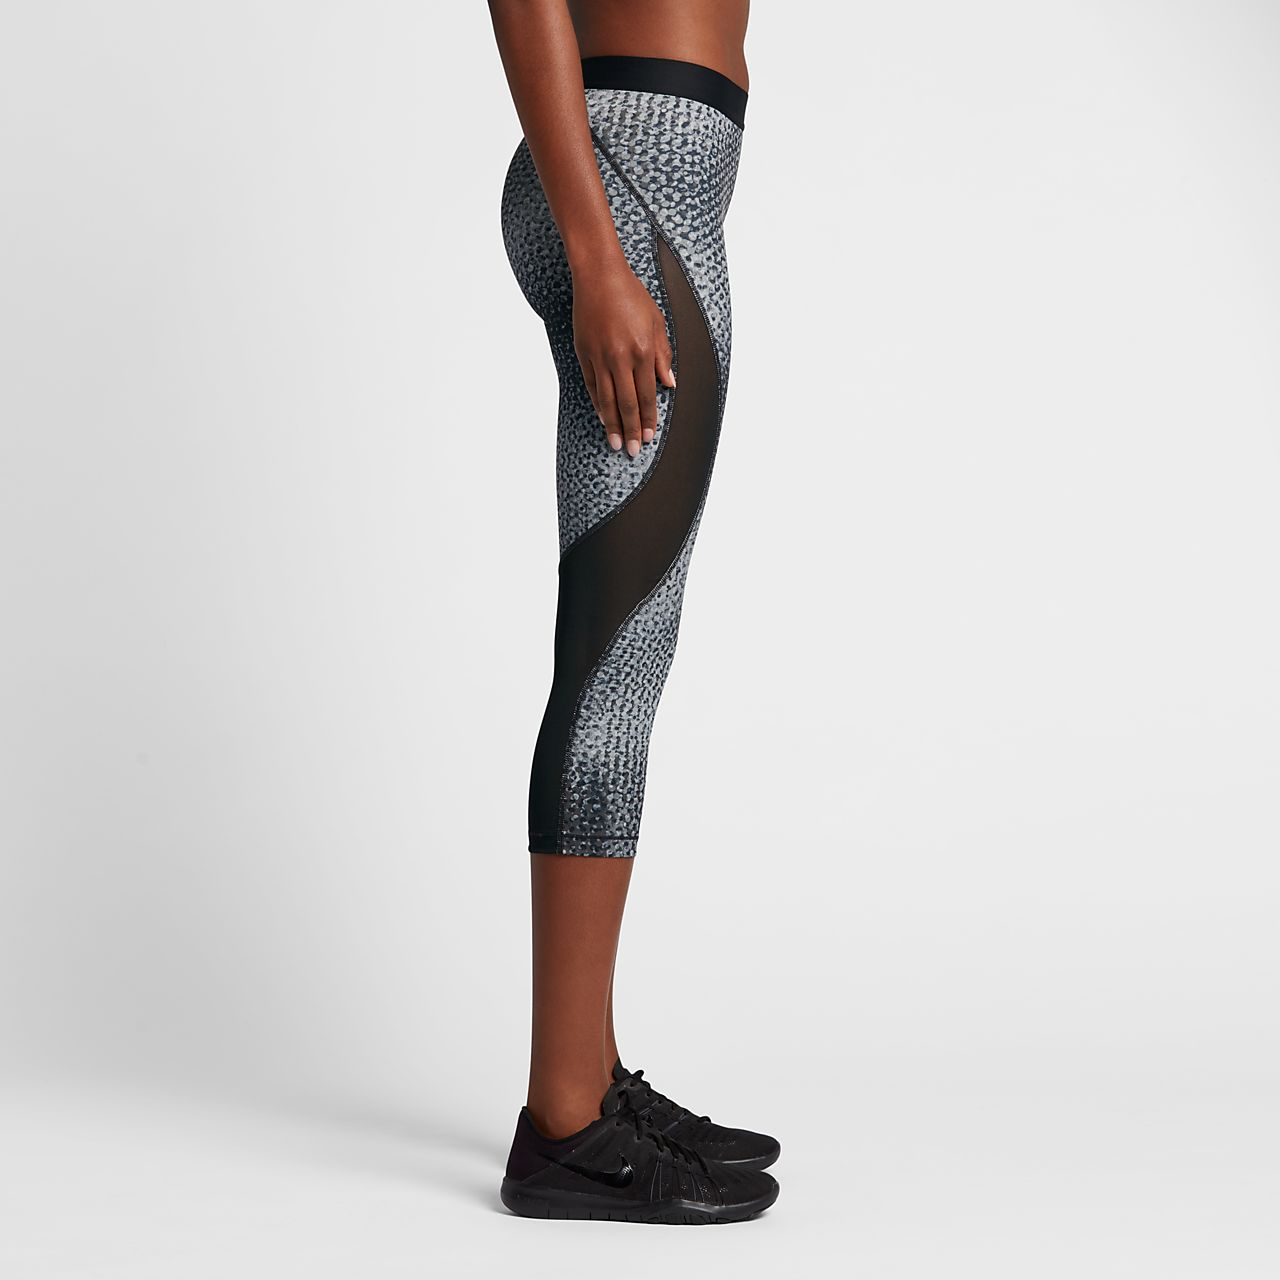 Training Capris Nike Pro HyperCool Women's 22\